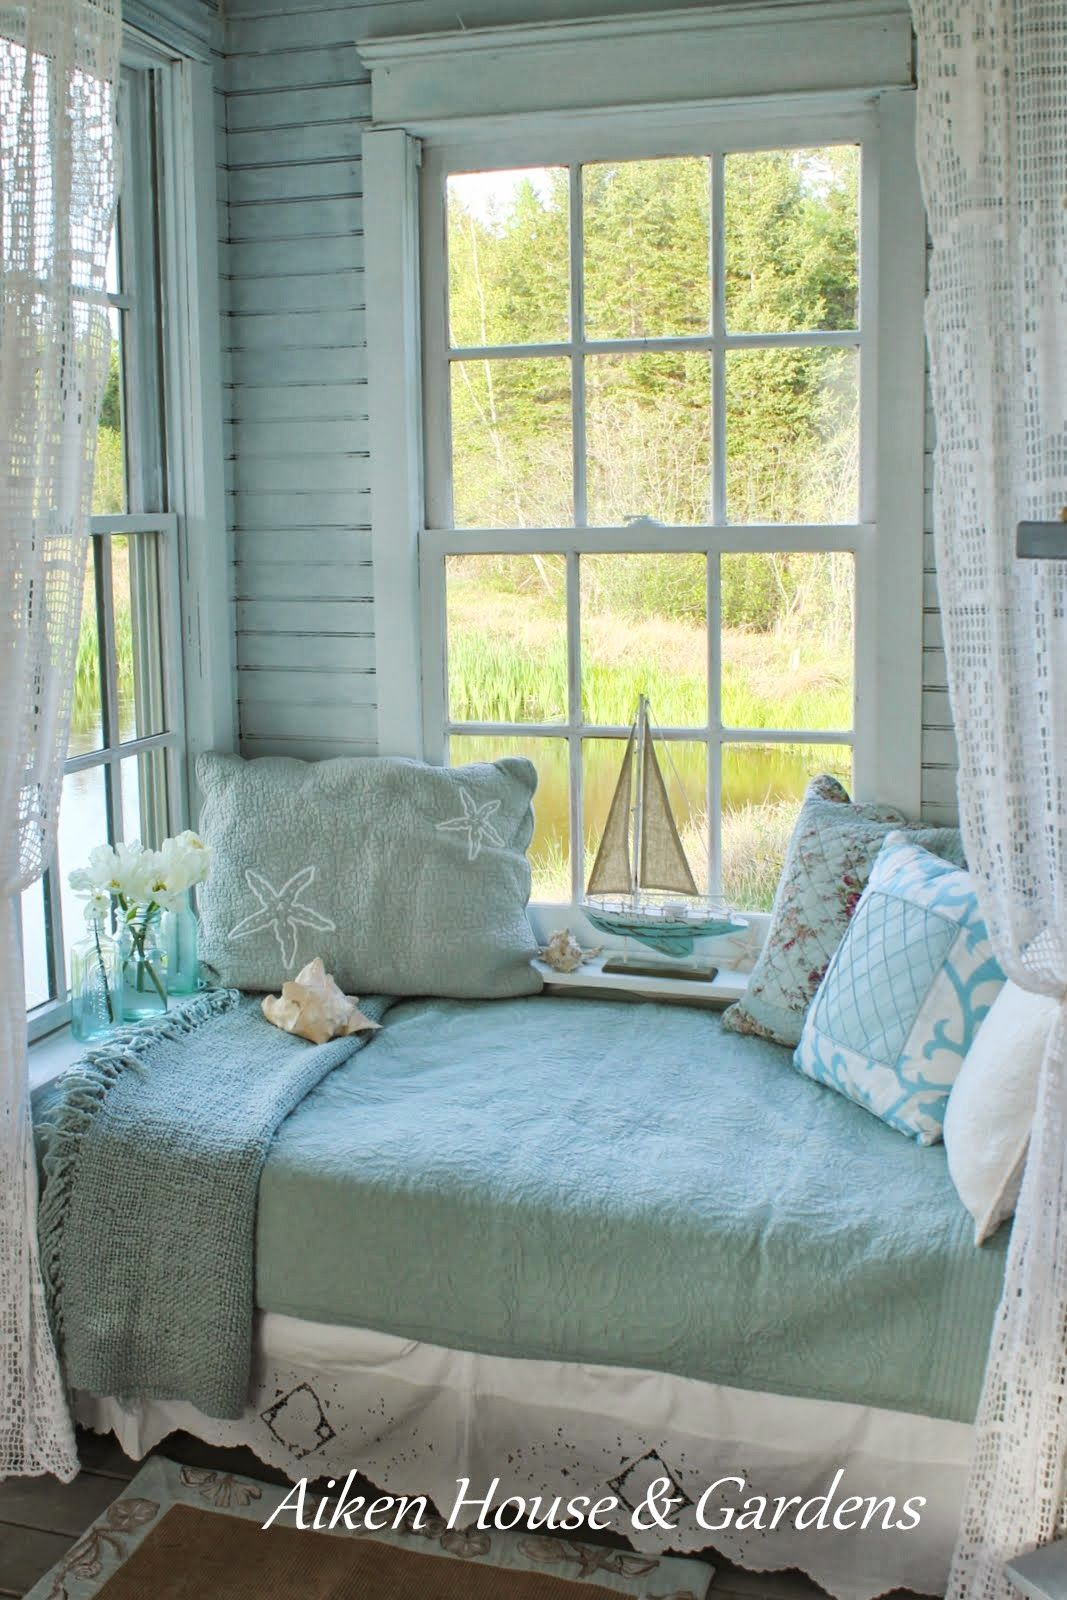 Bed covering window  pin by ann on turquoise  pinterest  aqua decor boathouse and boat